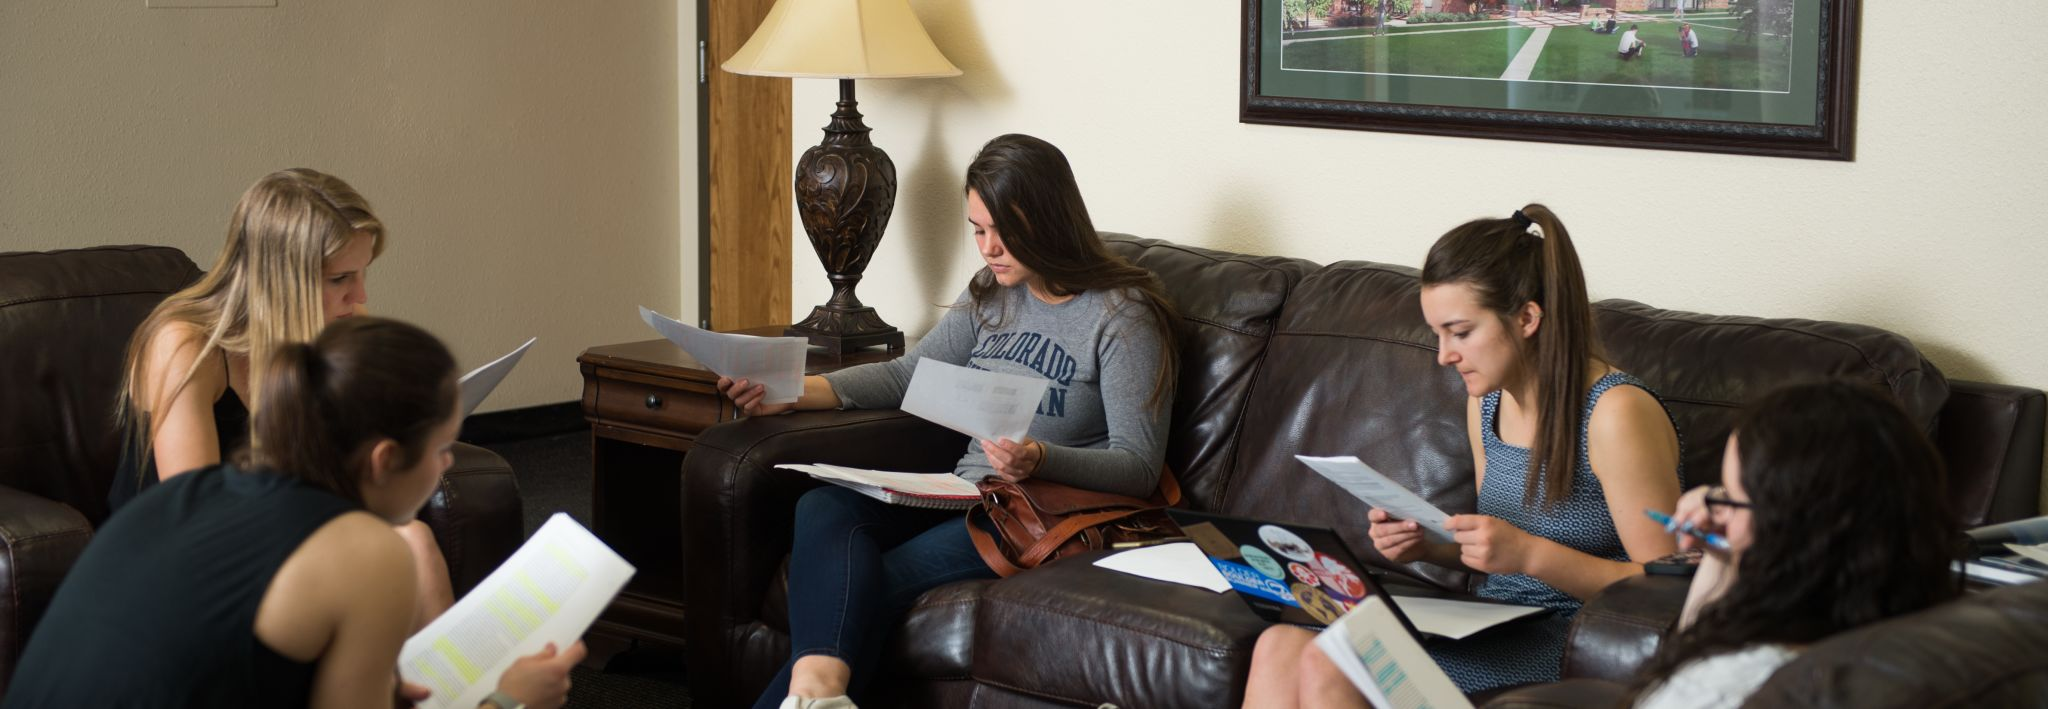 CCU students studying for an exam in their on campus housing.